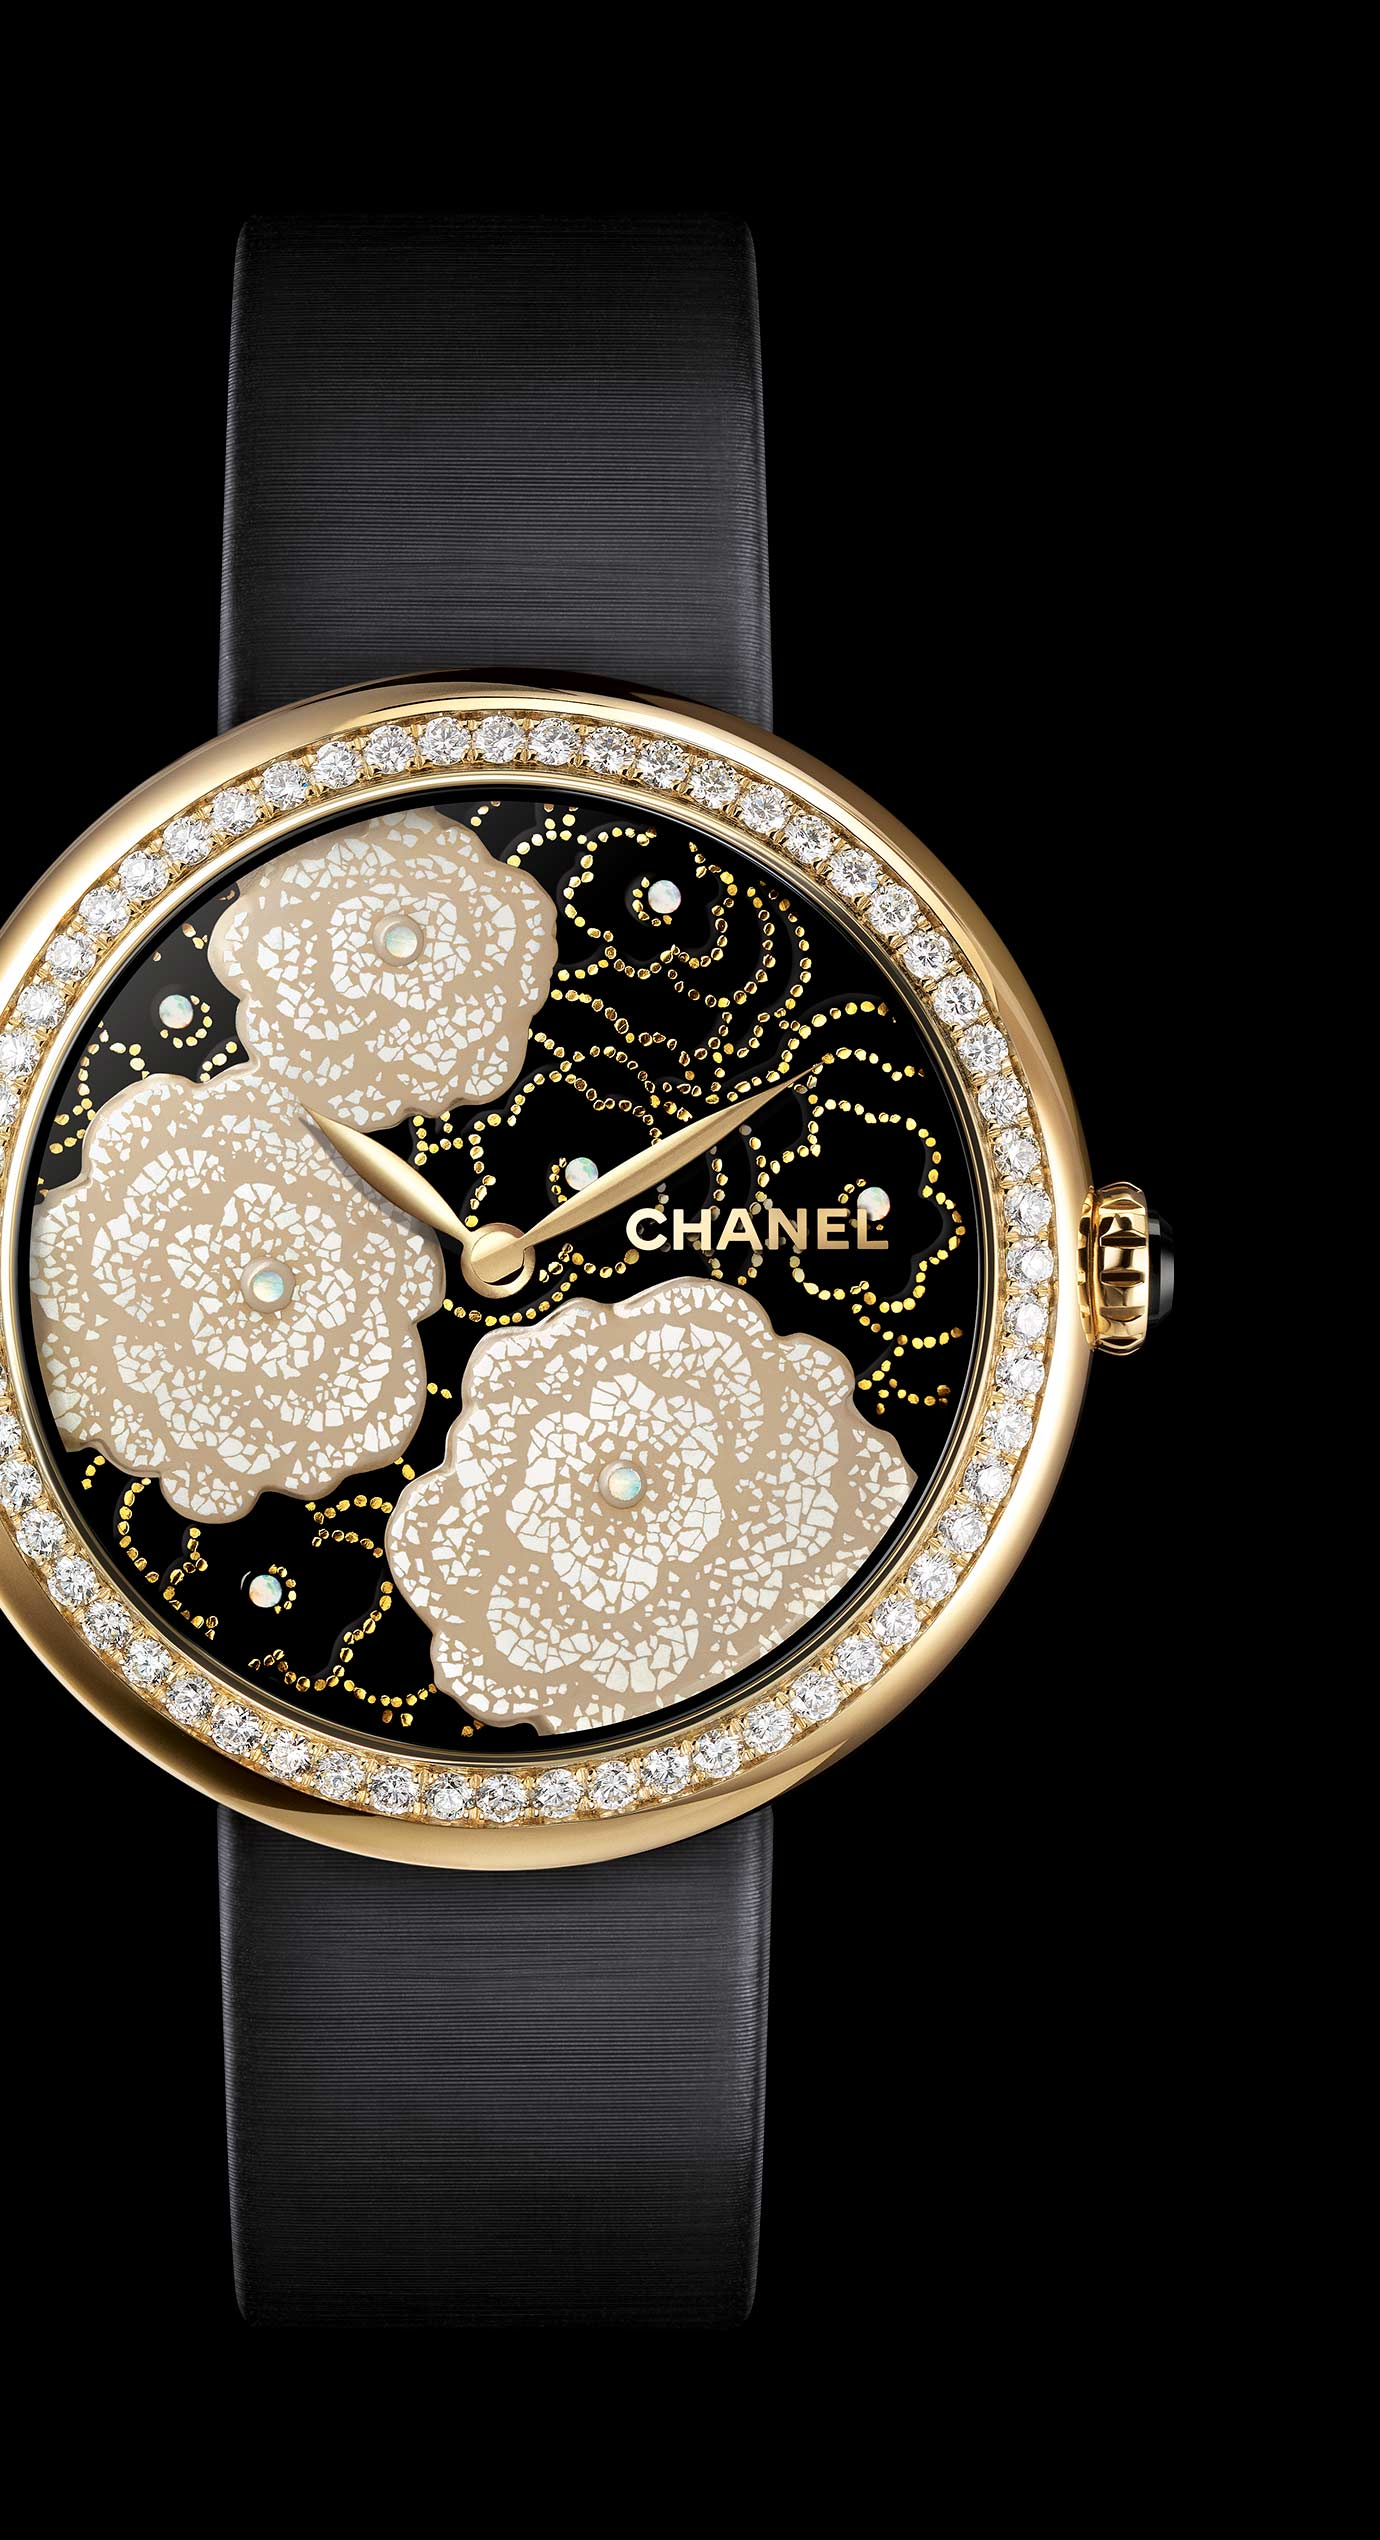 Mademoiselle Privé Camélias watch in yellow gold and quail eggshells, black lacquer dial - Maki-e technique - Enlarged view